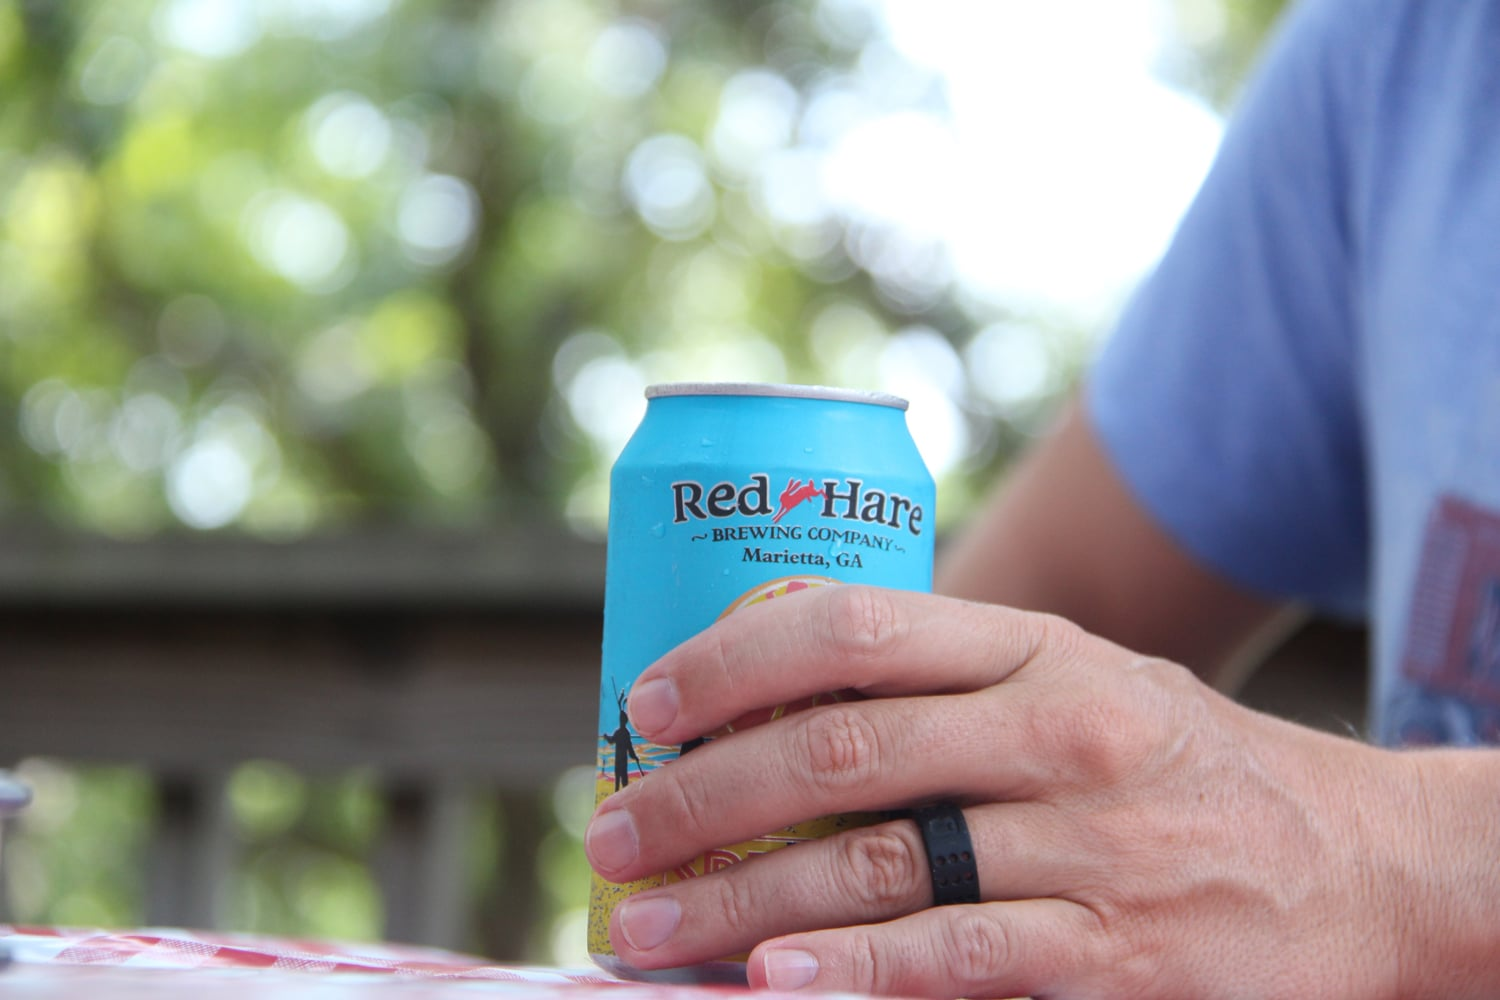 flexible wedding ring flexible wedding ring Relax with a flexible wedding ring and Red Hare 50 50 grapefruit radler